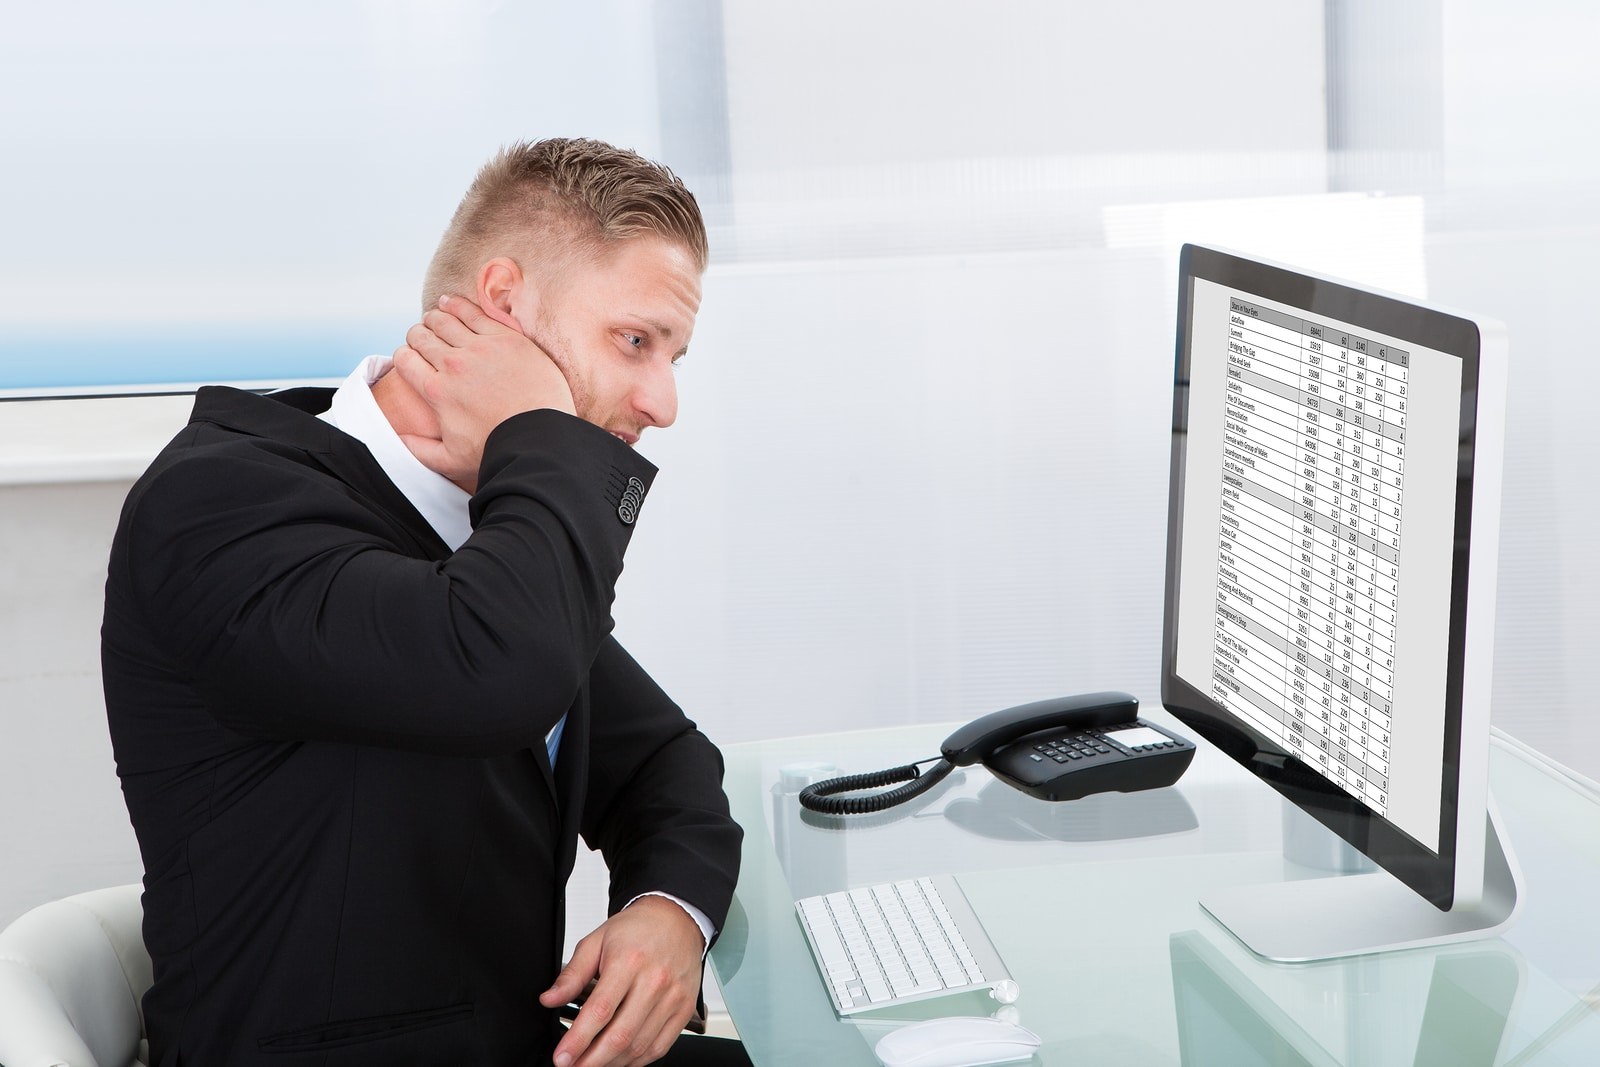 Man overwhelmed by spreadsheets